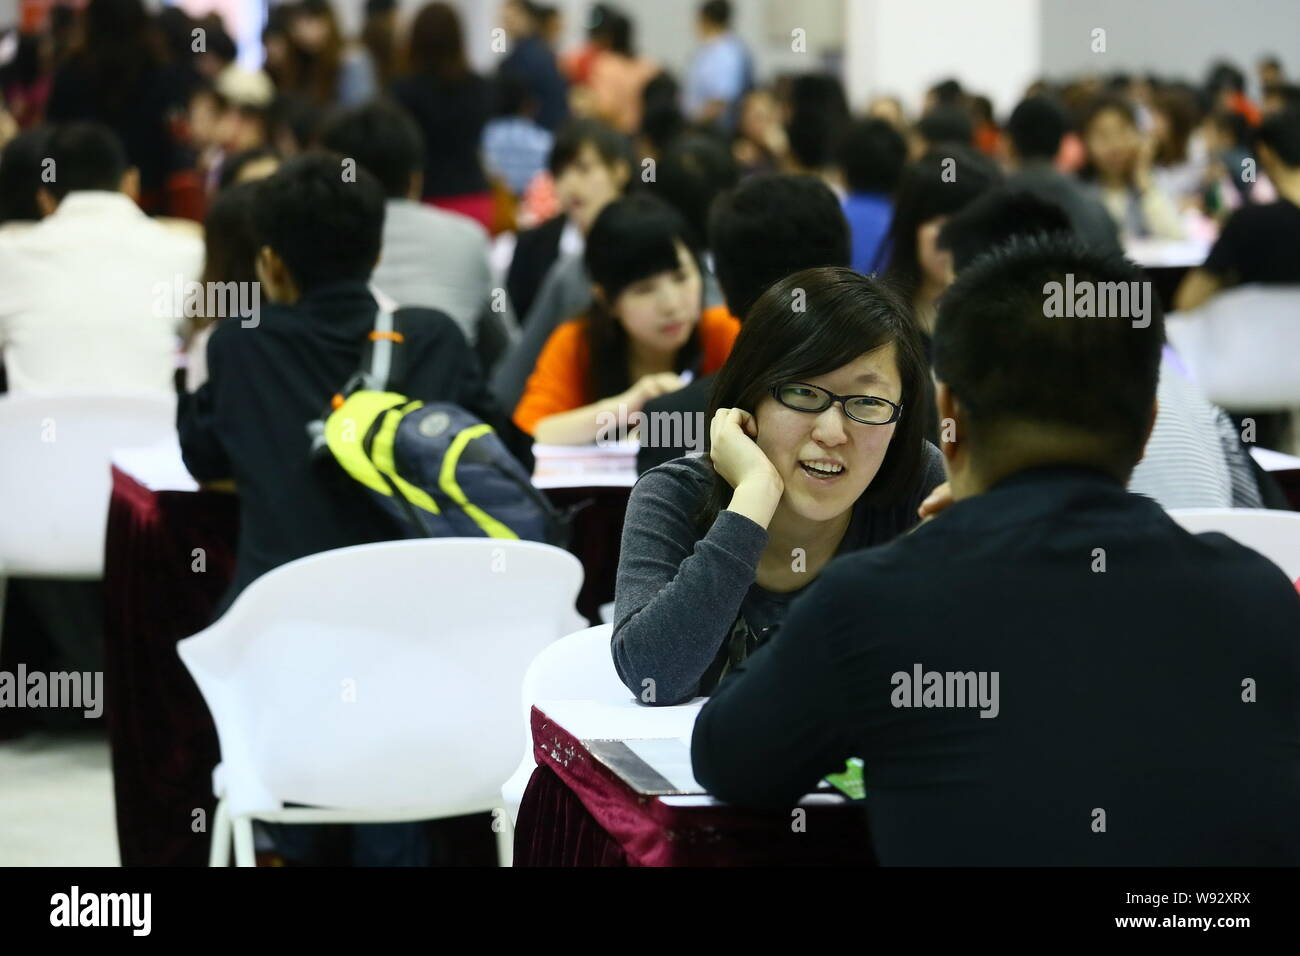 Cina matchmaking spettacolo 2013